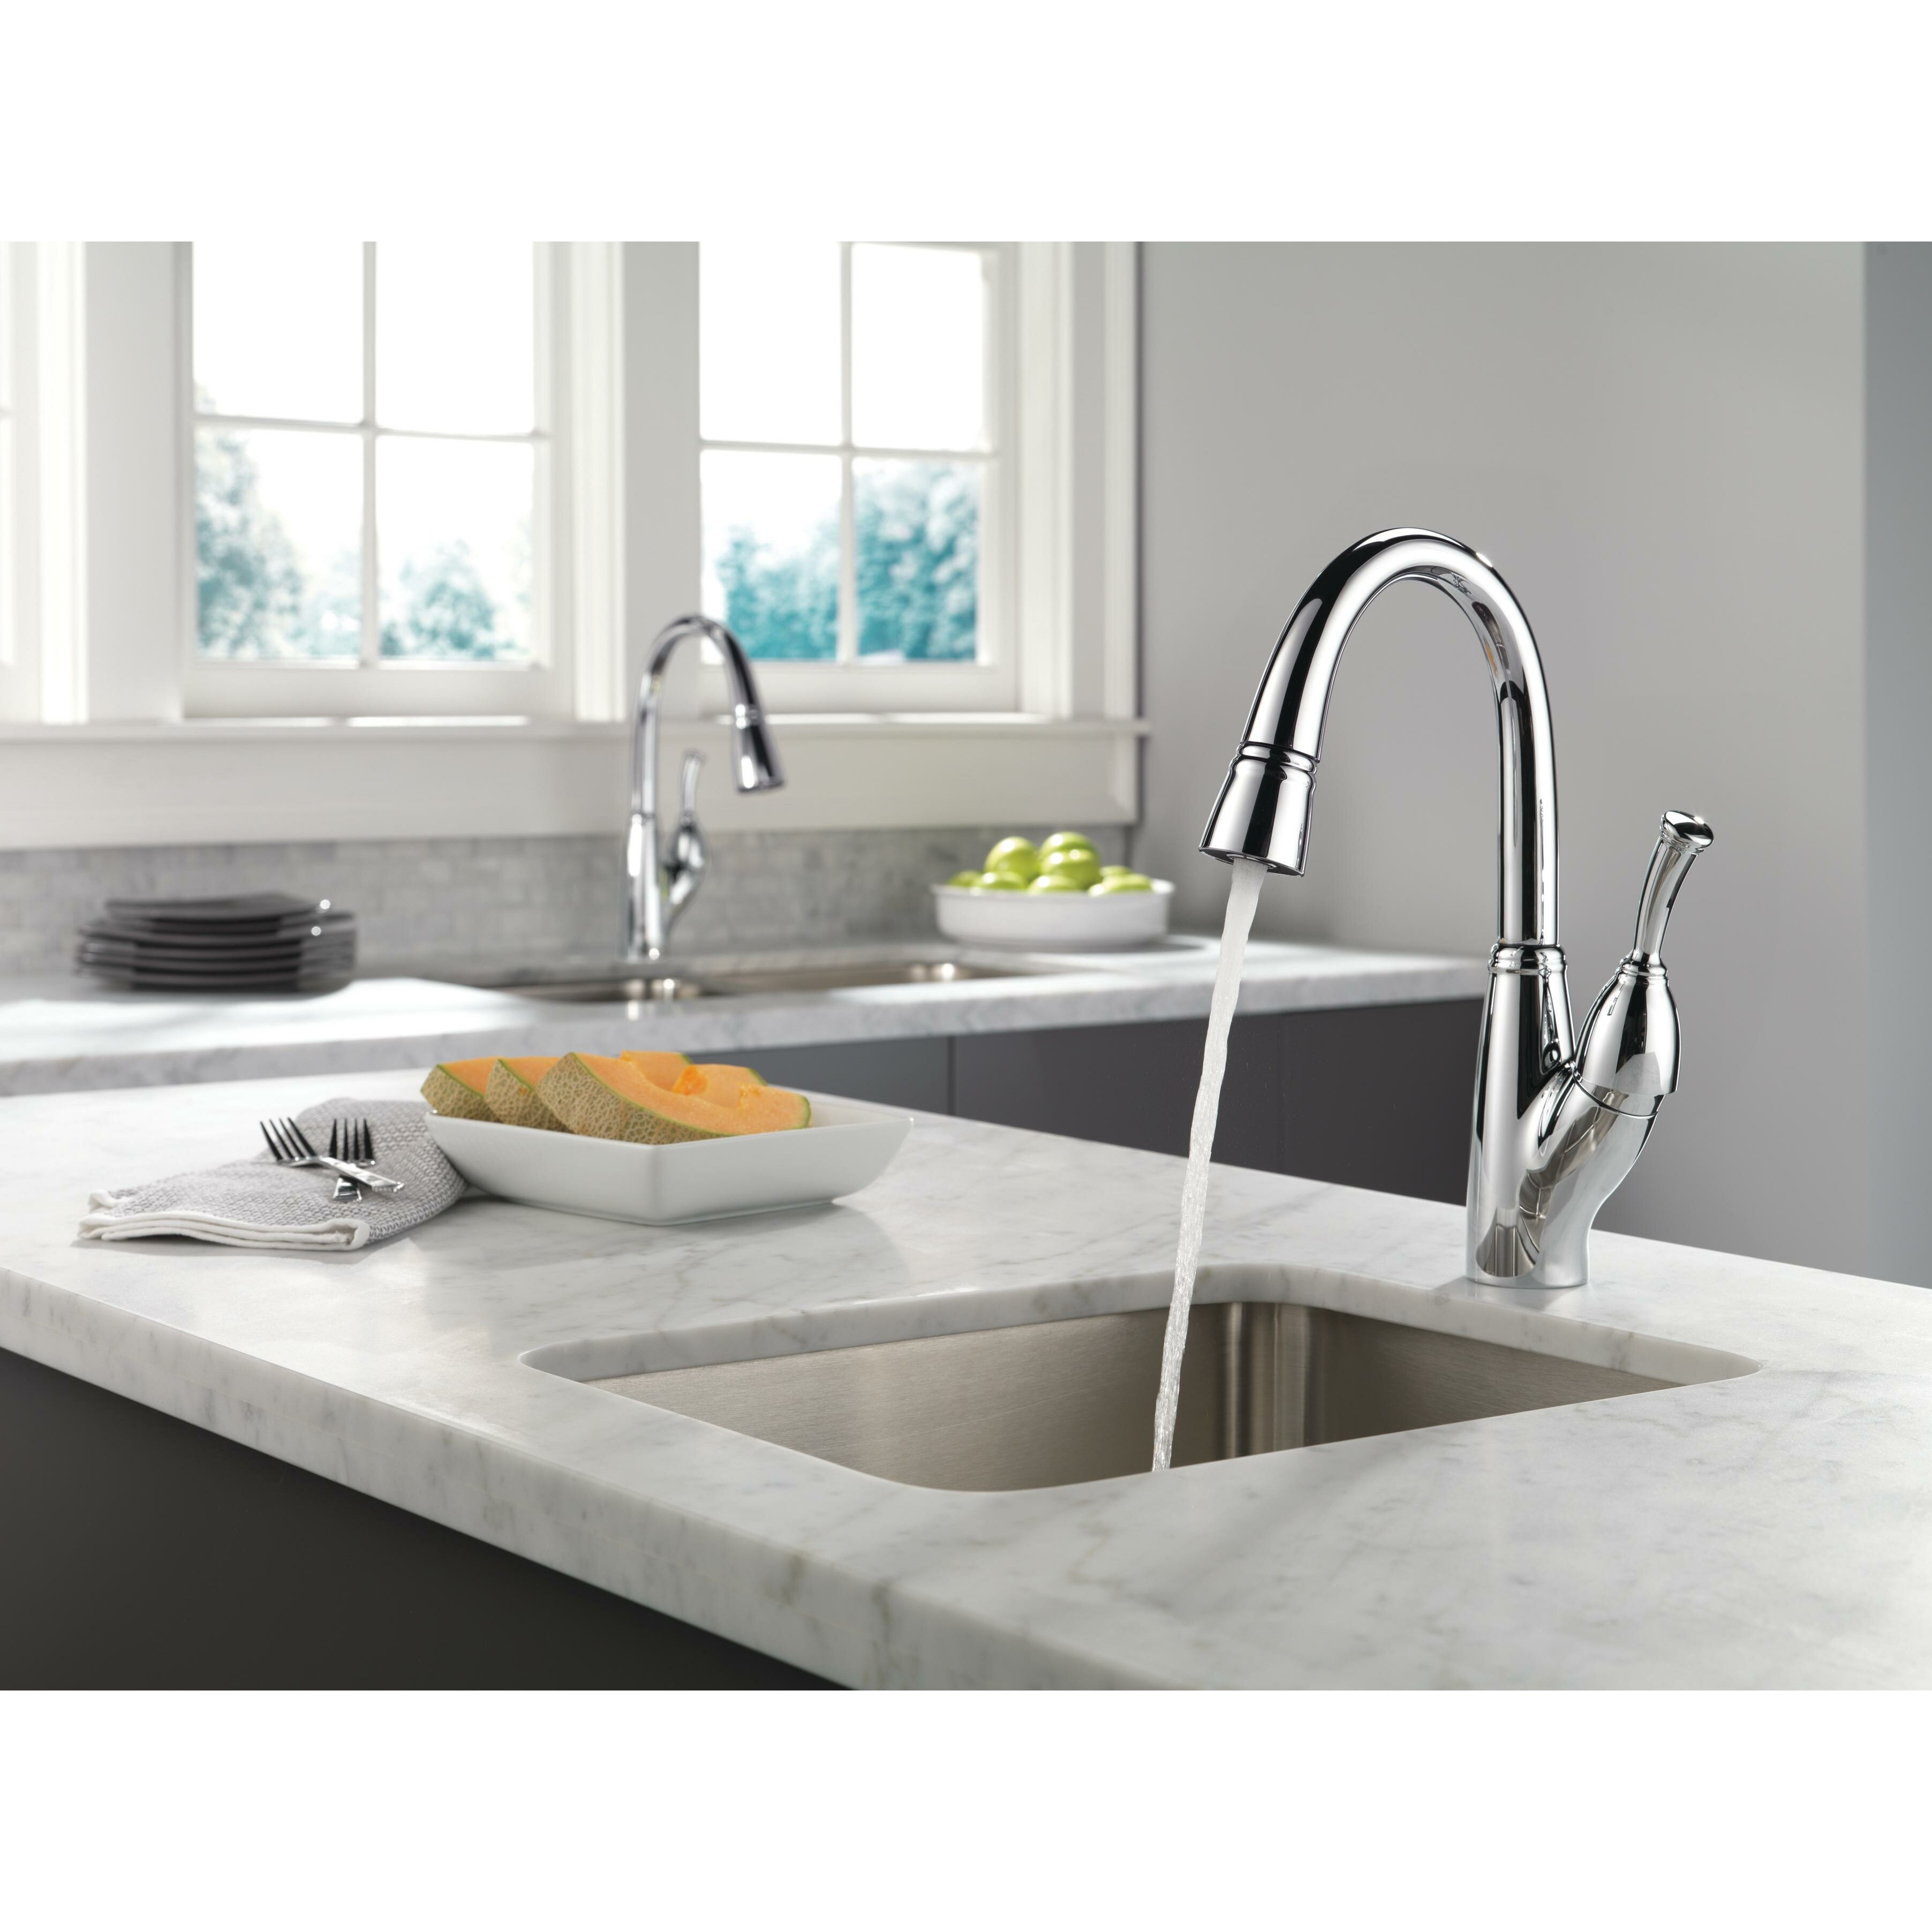 Delta Pull Out Kitchen Faucet Delta Allora Single Handle Deck Mounted Bar Faucet With Pull Out